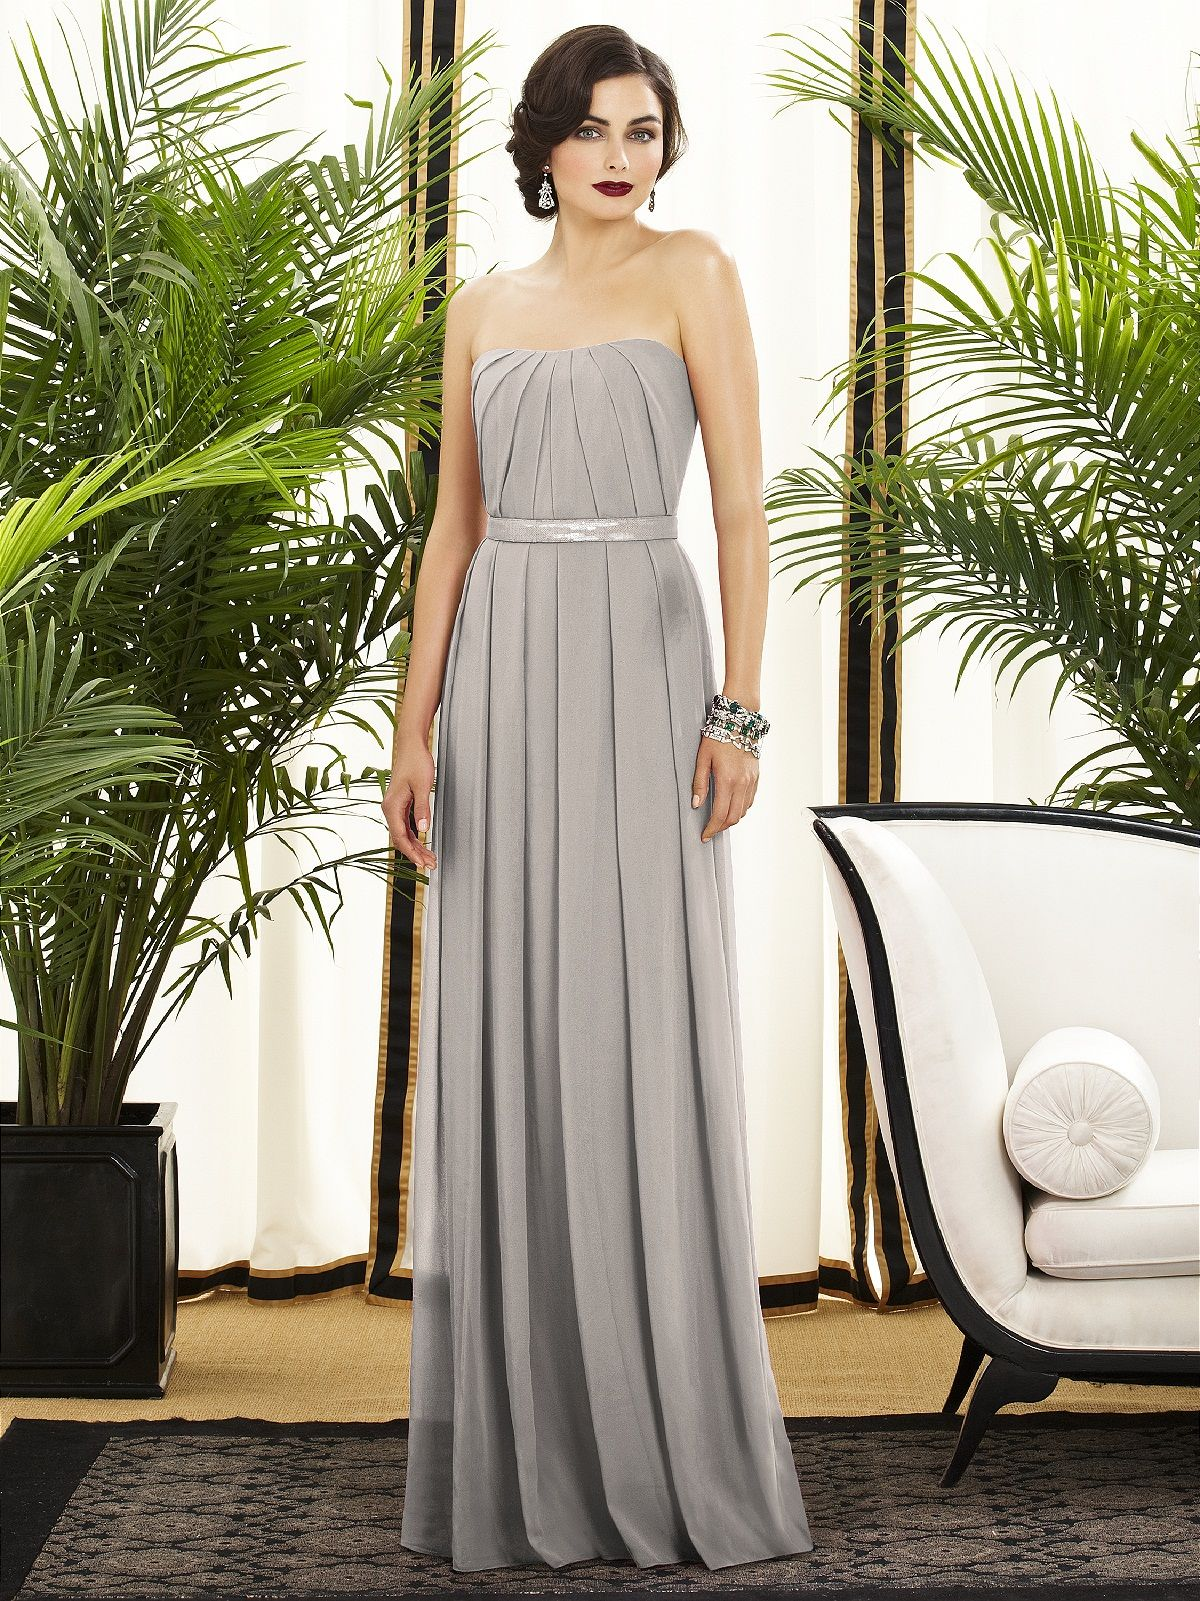 Grey wedding dresses  Dessy Collection Style   Wedding